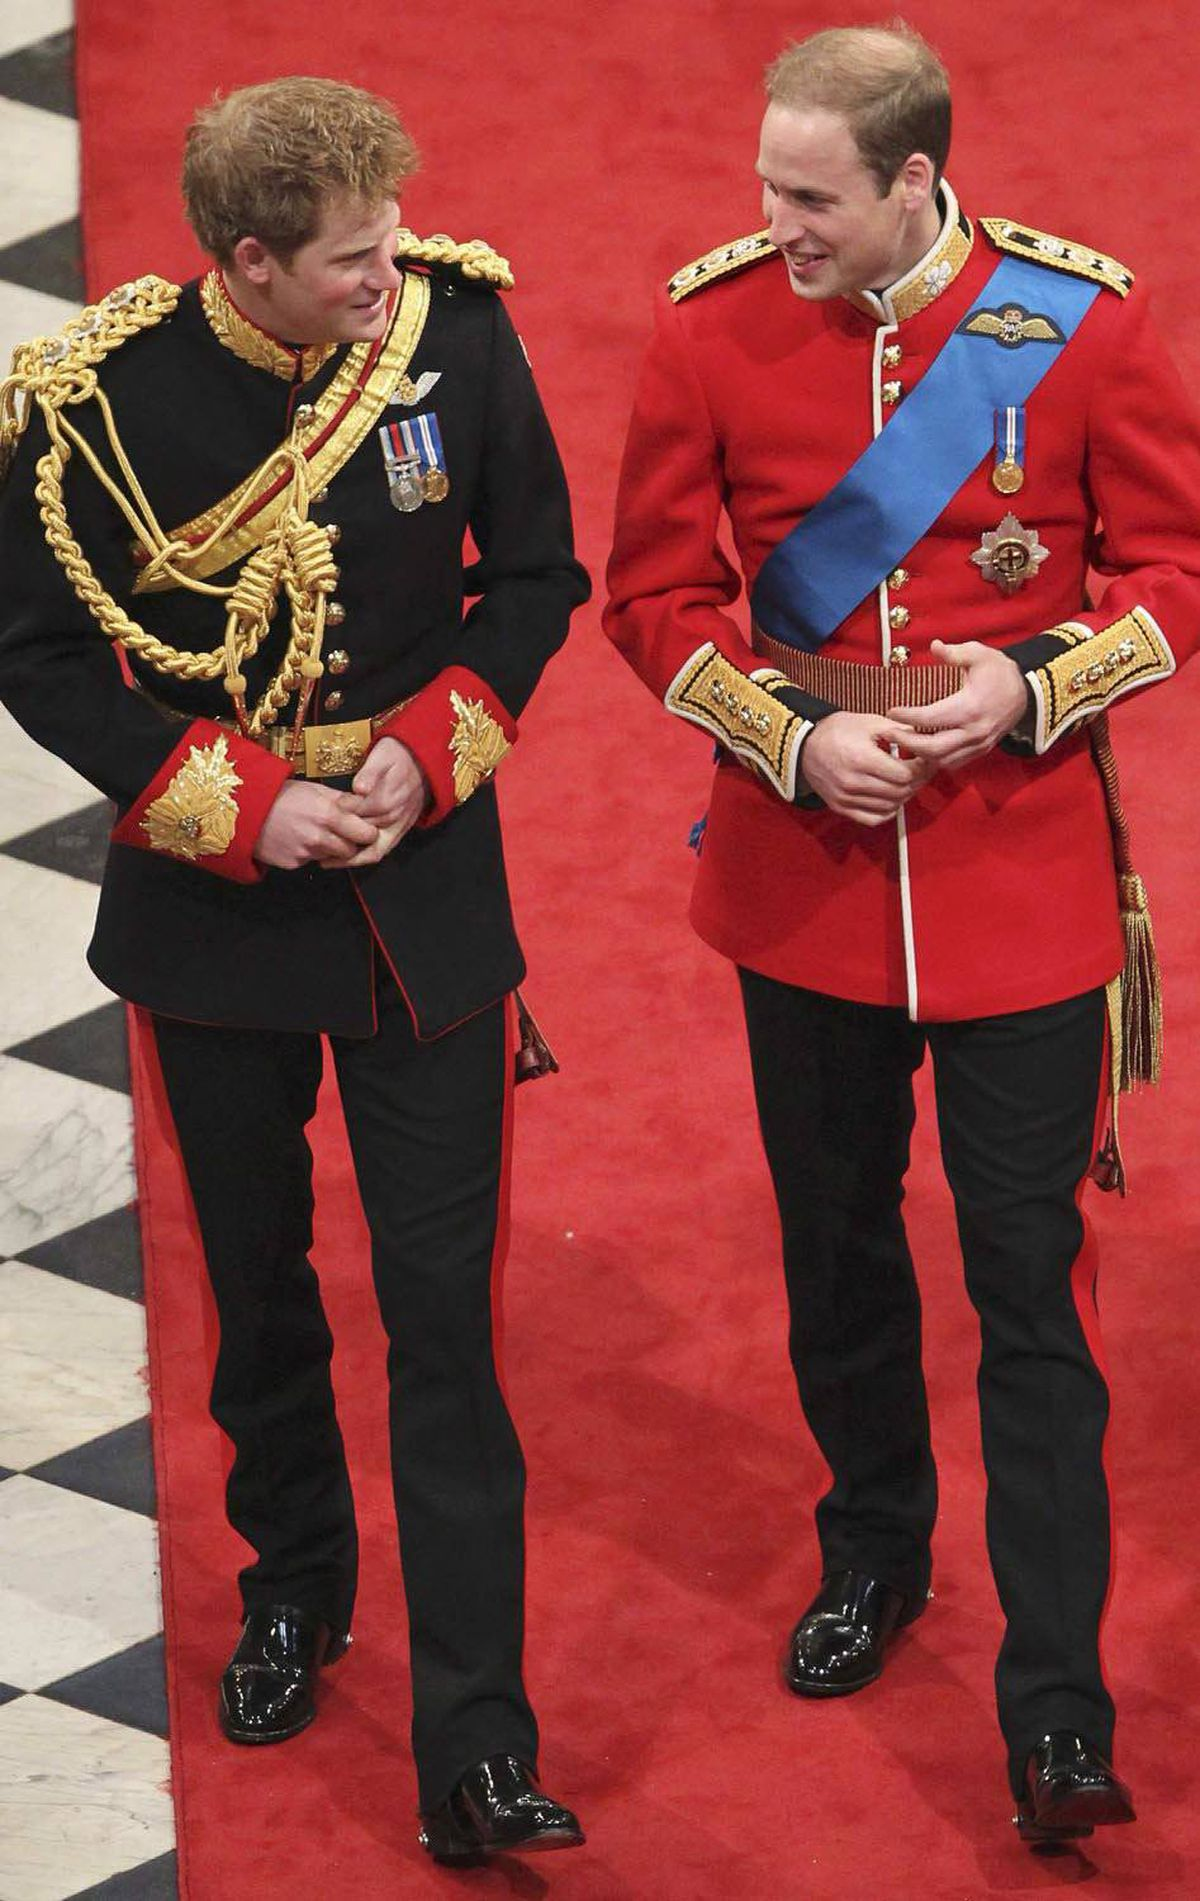 BROTHER Britain's Princes William and Harry arrive for William's wedding to Kate Middleton at Westminster Abbey in London, April 29, 2011.